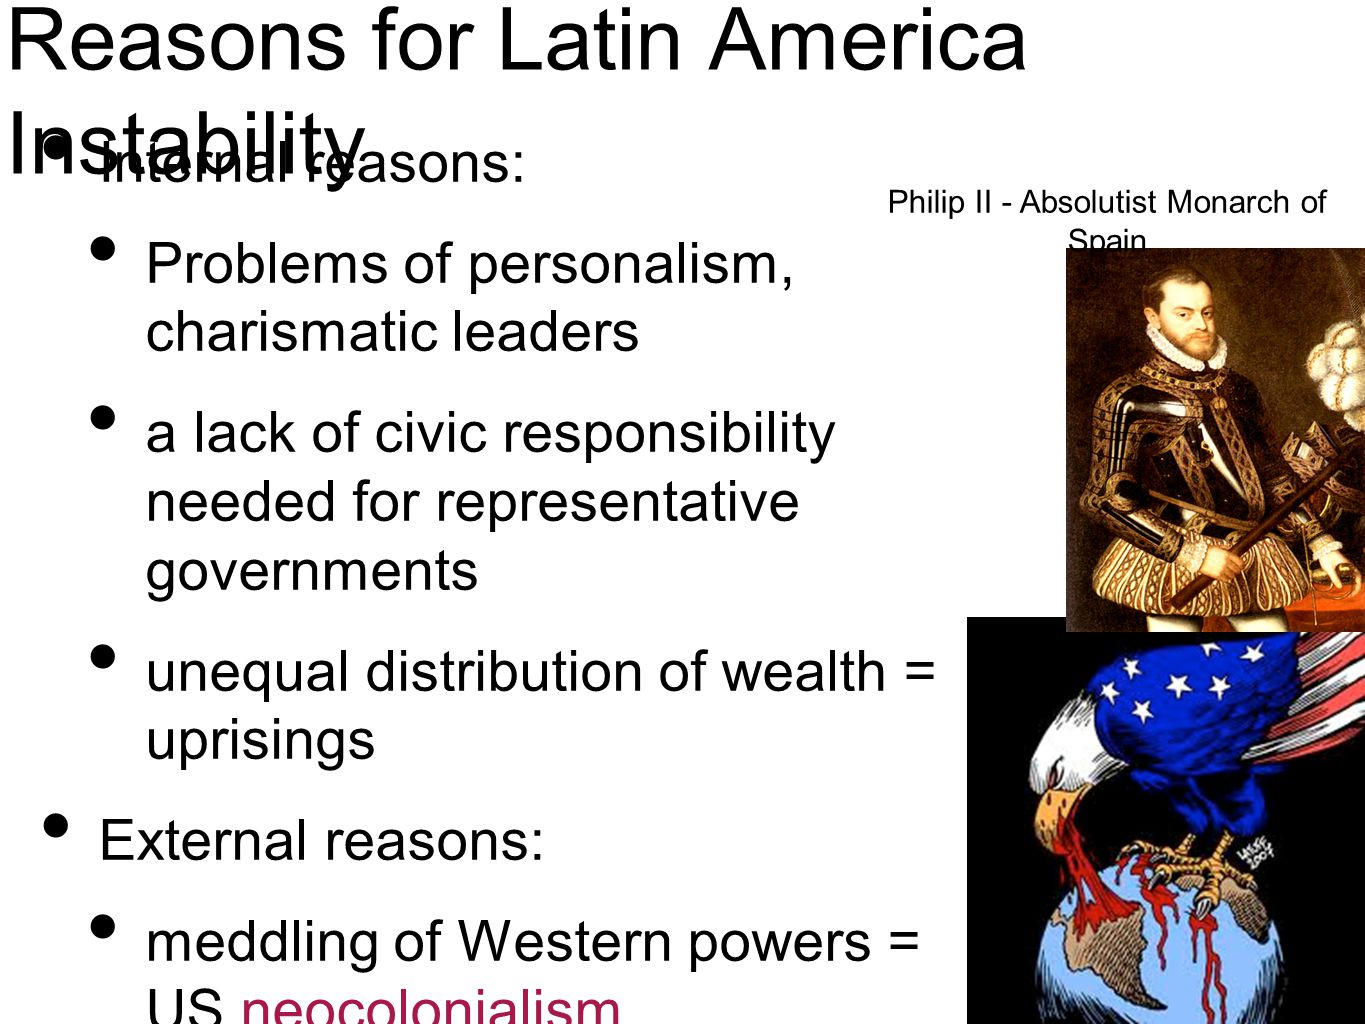 Reasons for Latin America Instability Internal reasons: Problems of personalism, charismatic leaders a lack of civic responsibility needed for representative governments unequal distribution of wealth = uprisings External reasons: meddling of Western powers = US neocolonialism Philip II - Absolutist Monarch of Spain